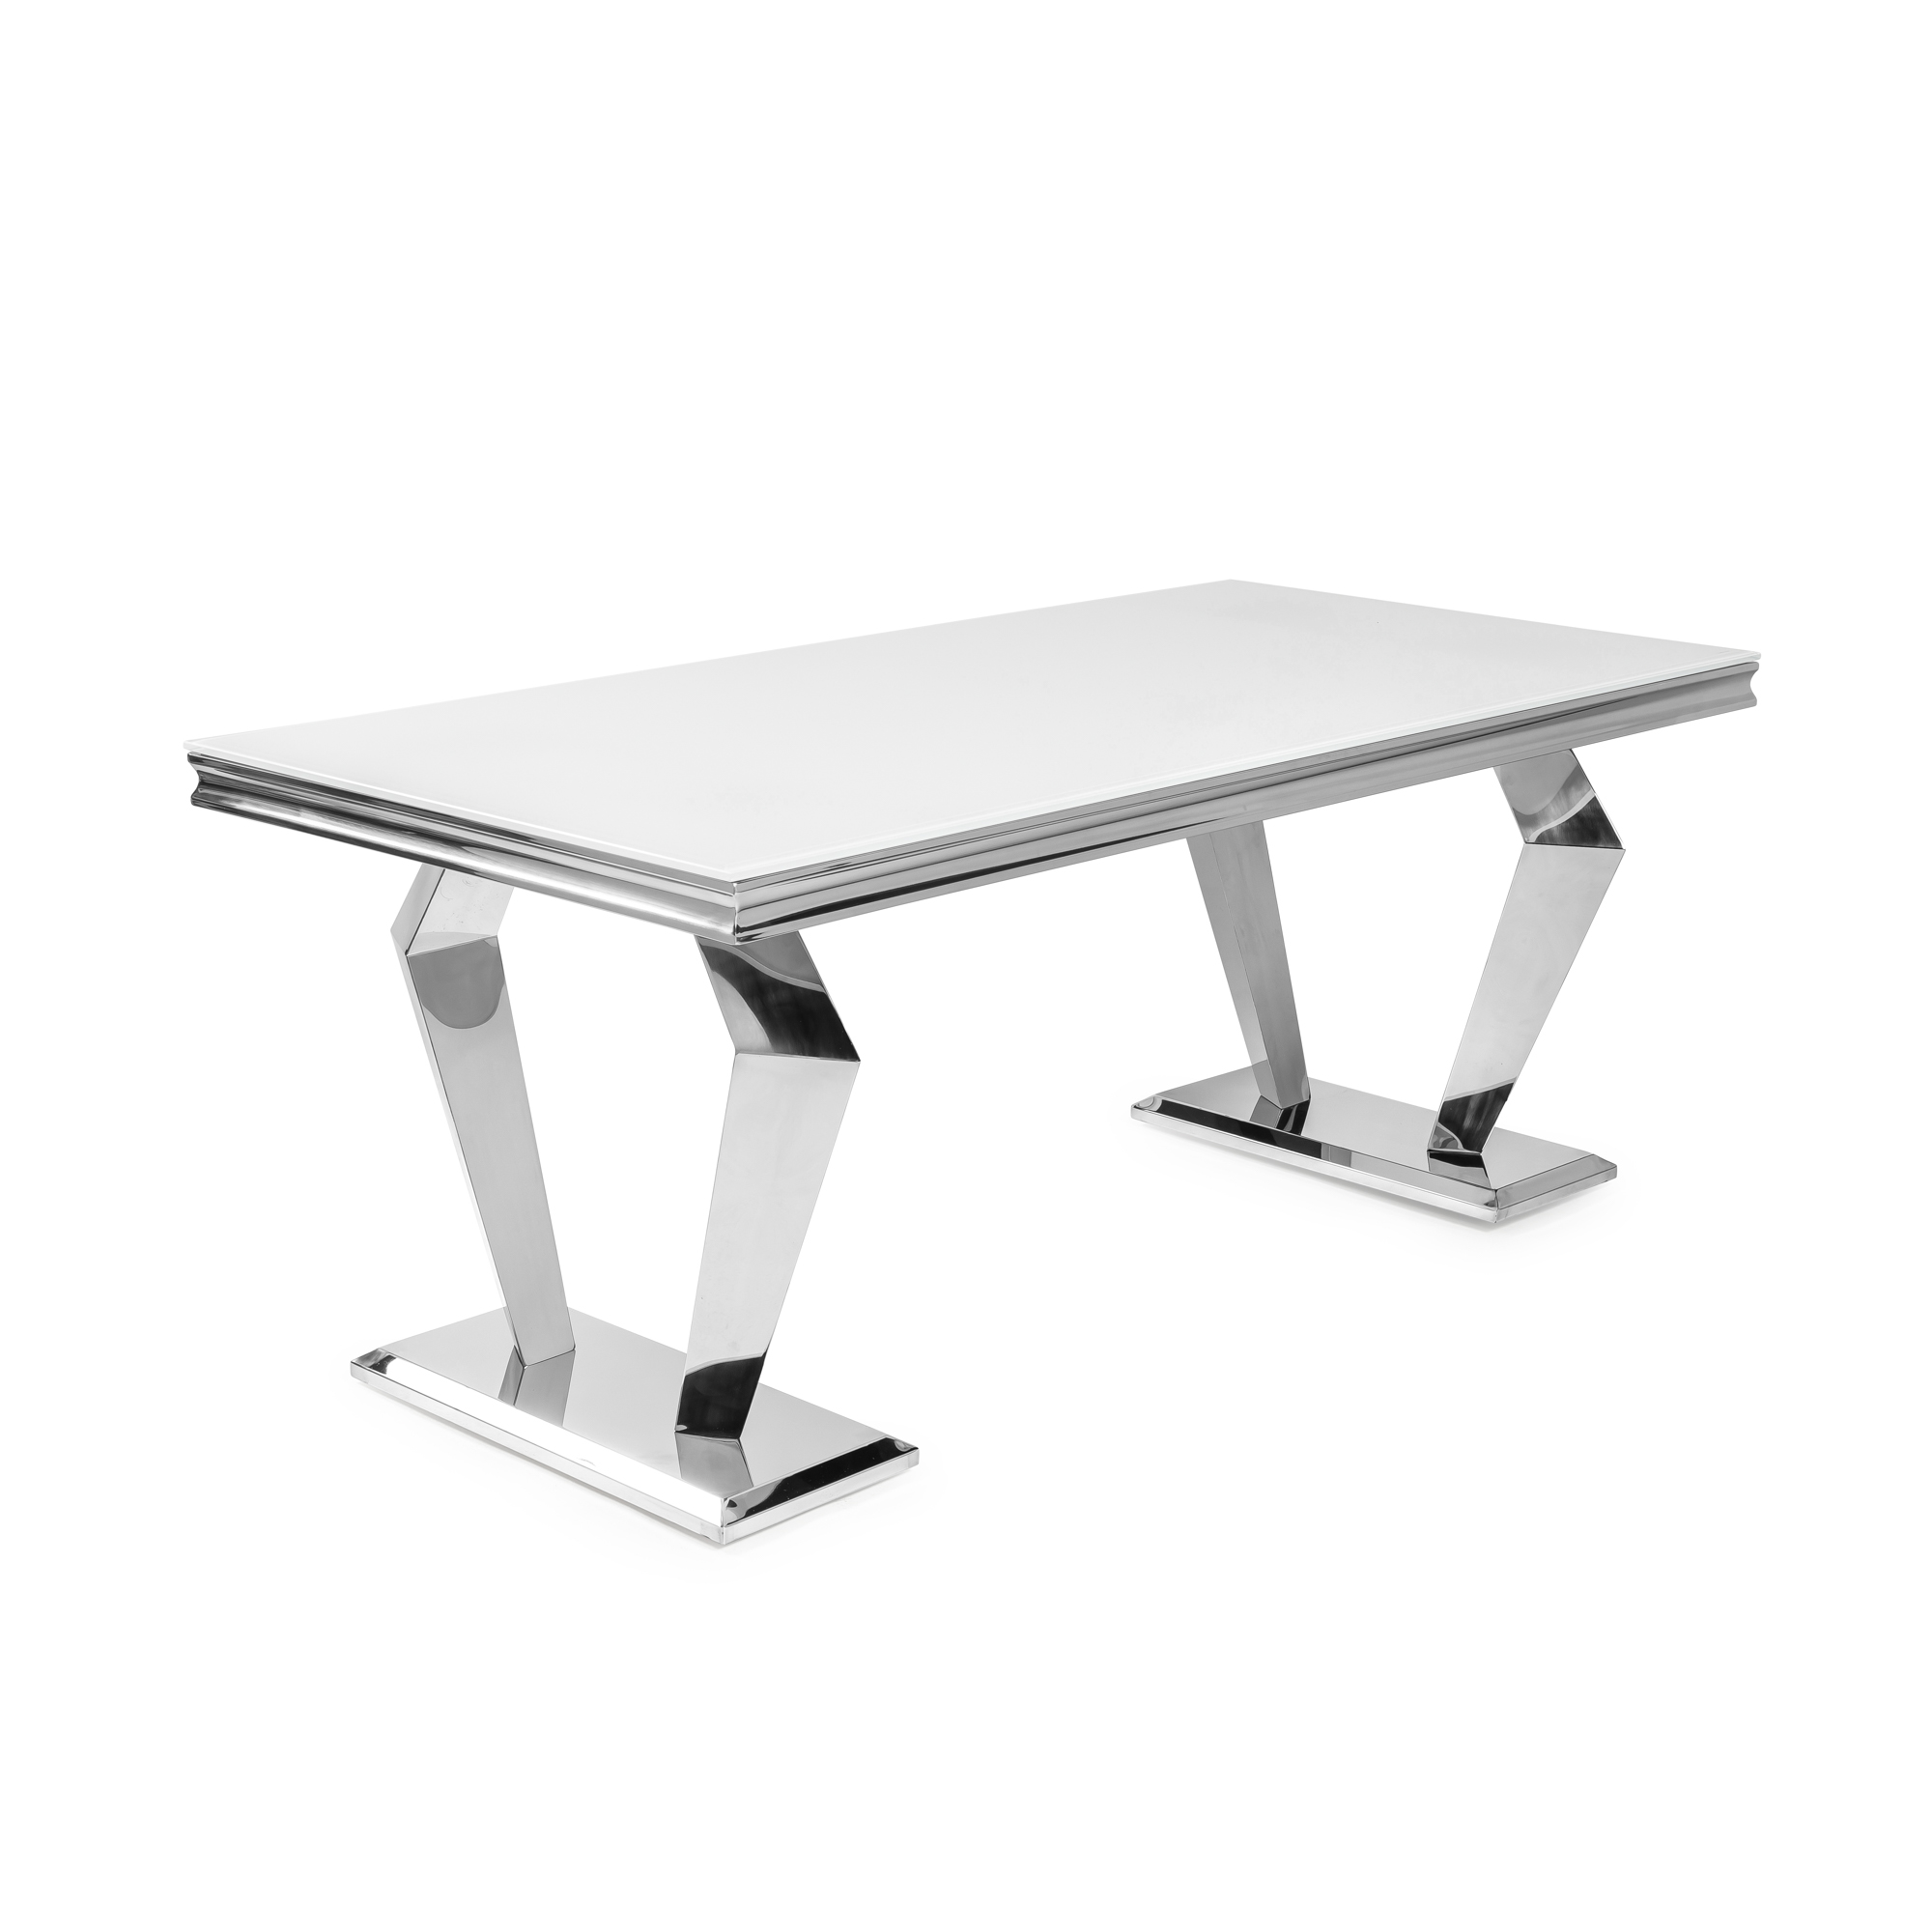 1.8M Sorrento Polished Steel Dining Table with a White Glass Top